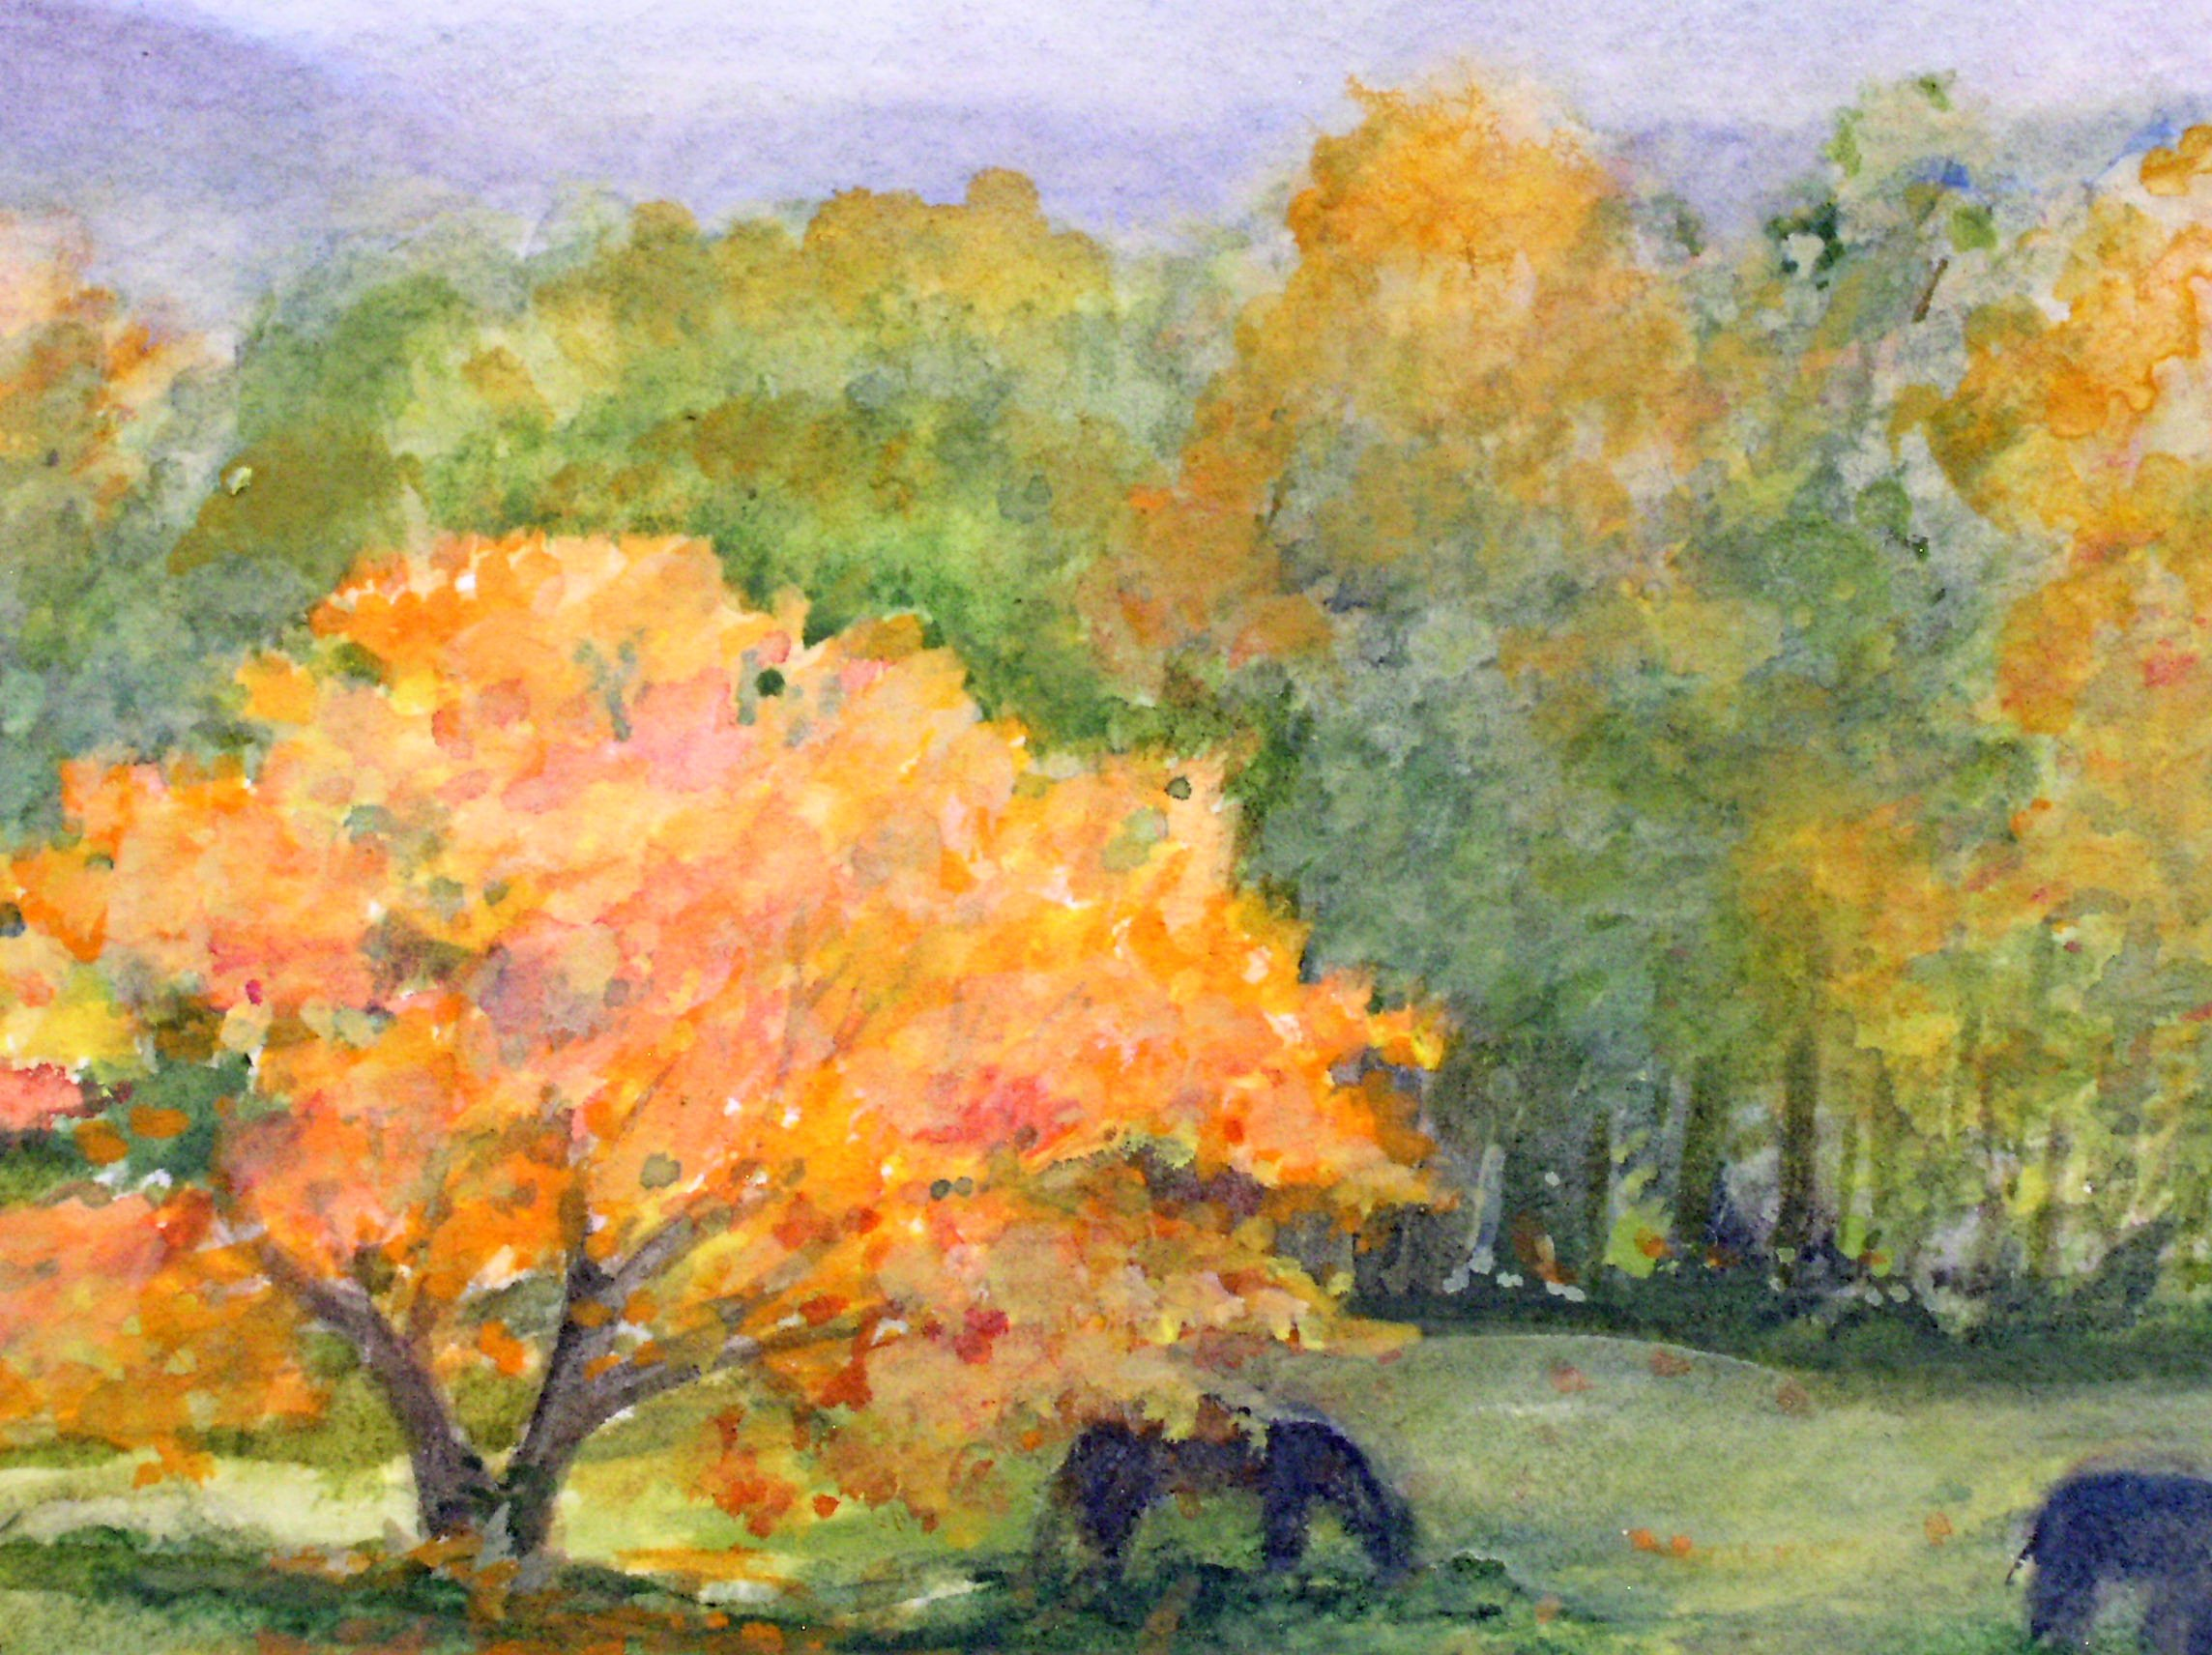 Shabby Shop Fall Autumn Landscape Watercolor Picturesque Scene Nature